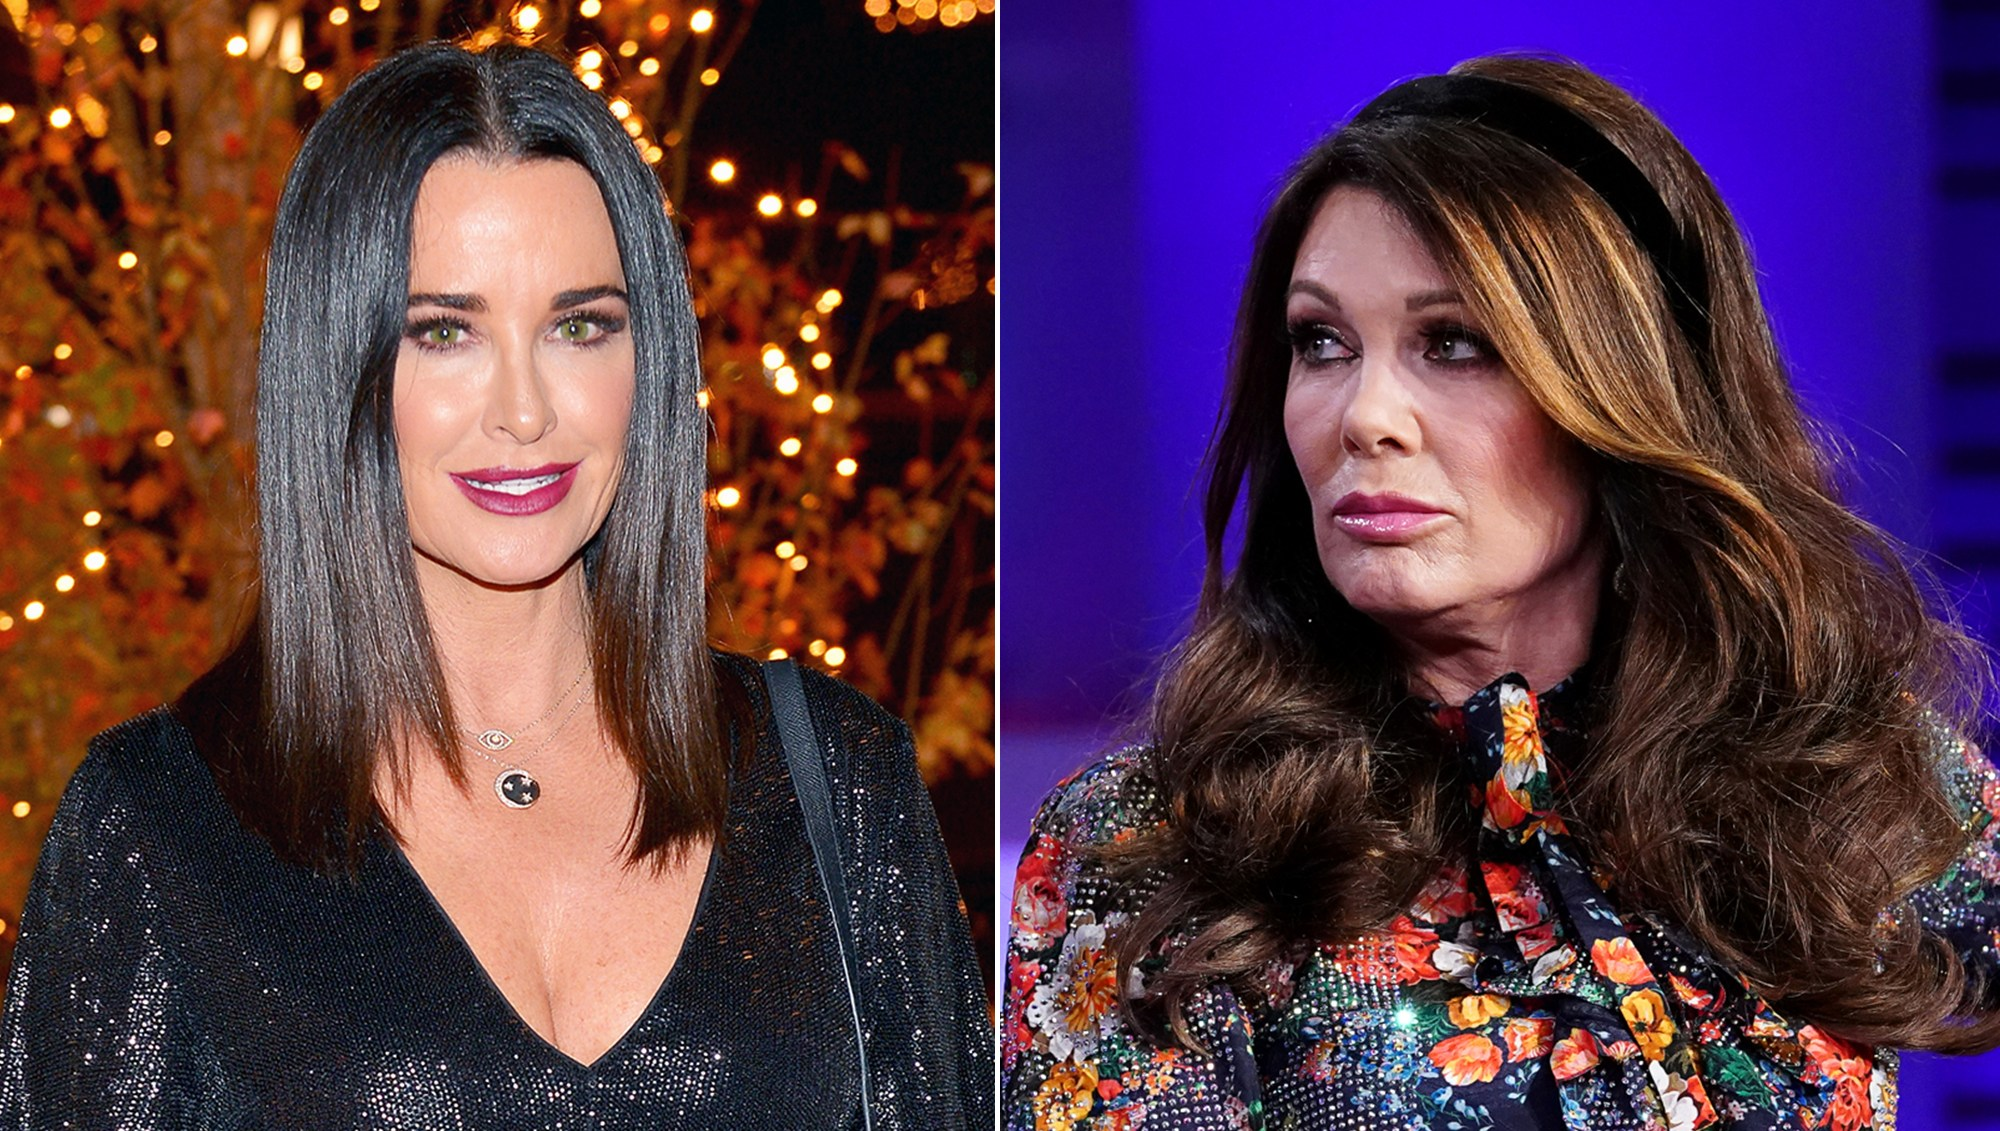 Kyle Richards Talks Drama With Lisa Vanderpump